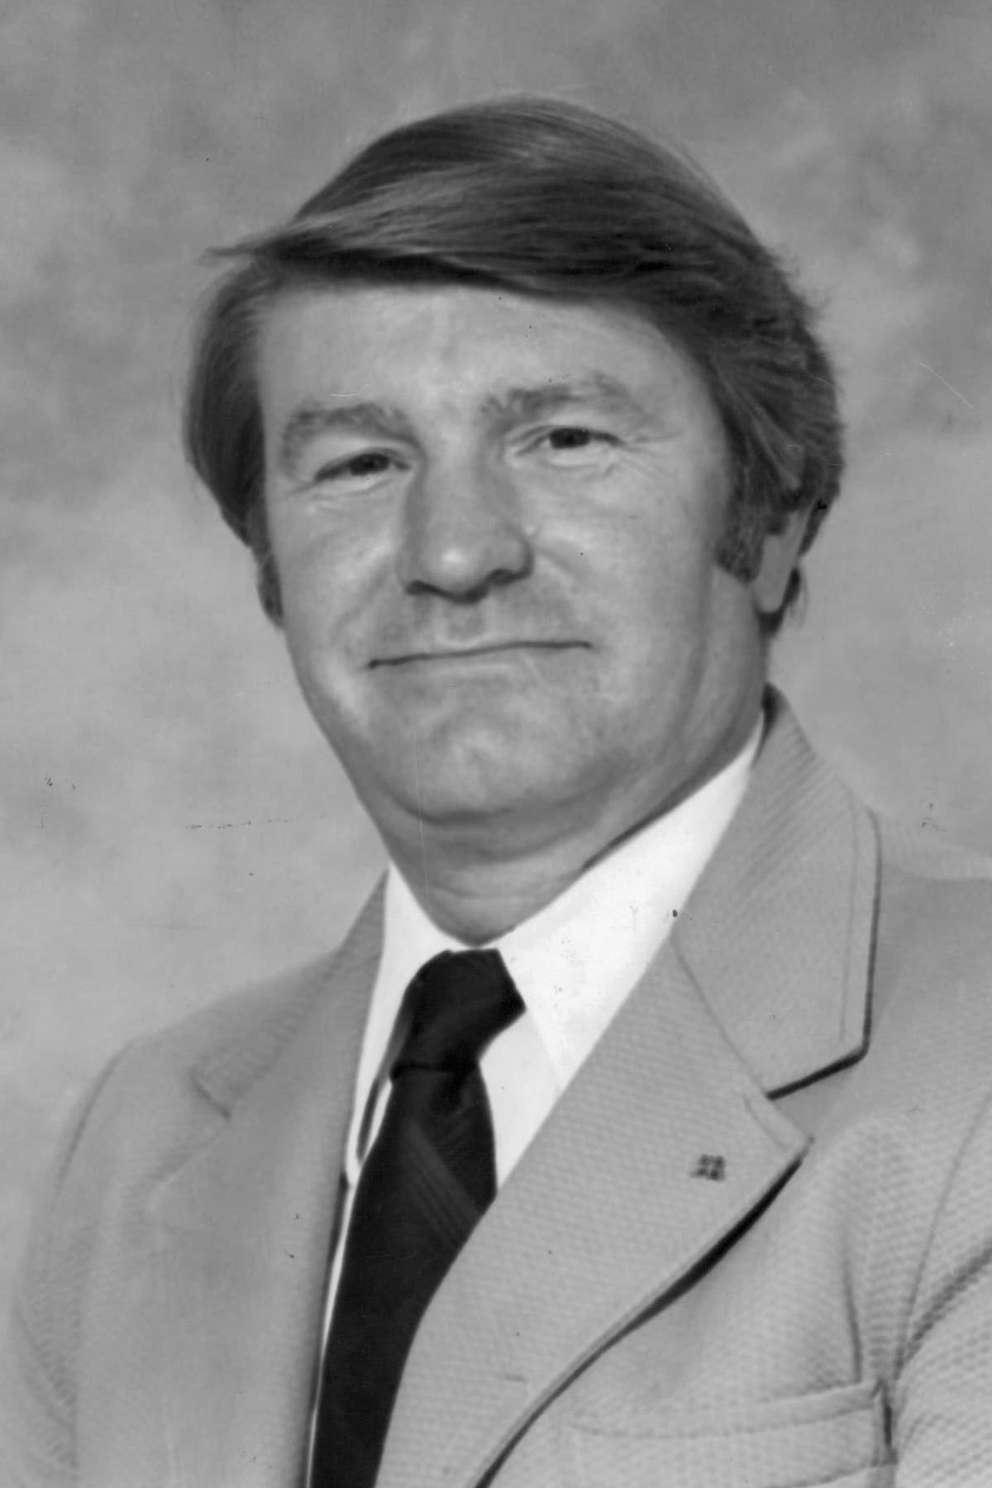 A 1982 photo of former Pasco County Republican Party chair Merland Conine of Port Richey as he ran for Florida House District 48. [Courtesy of Merland Conine]